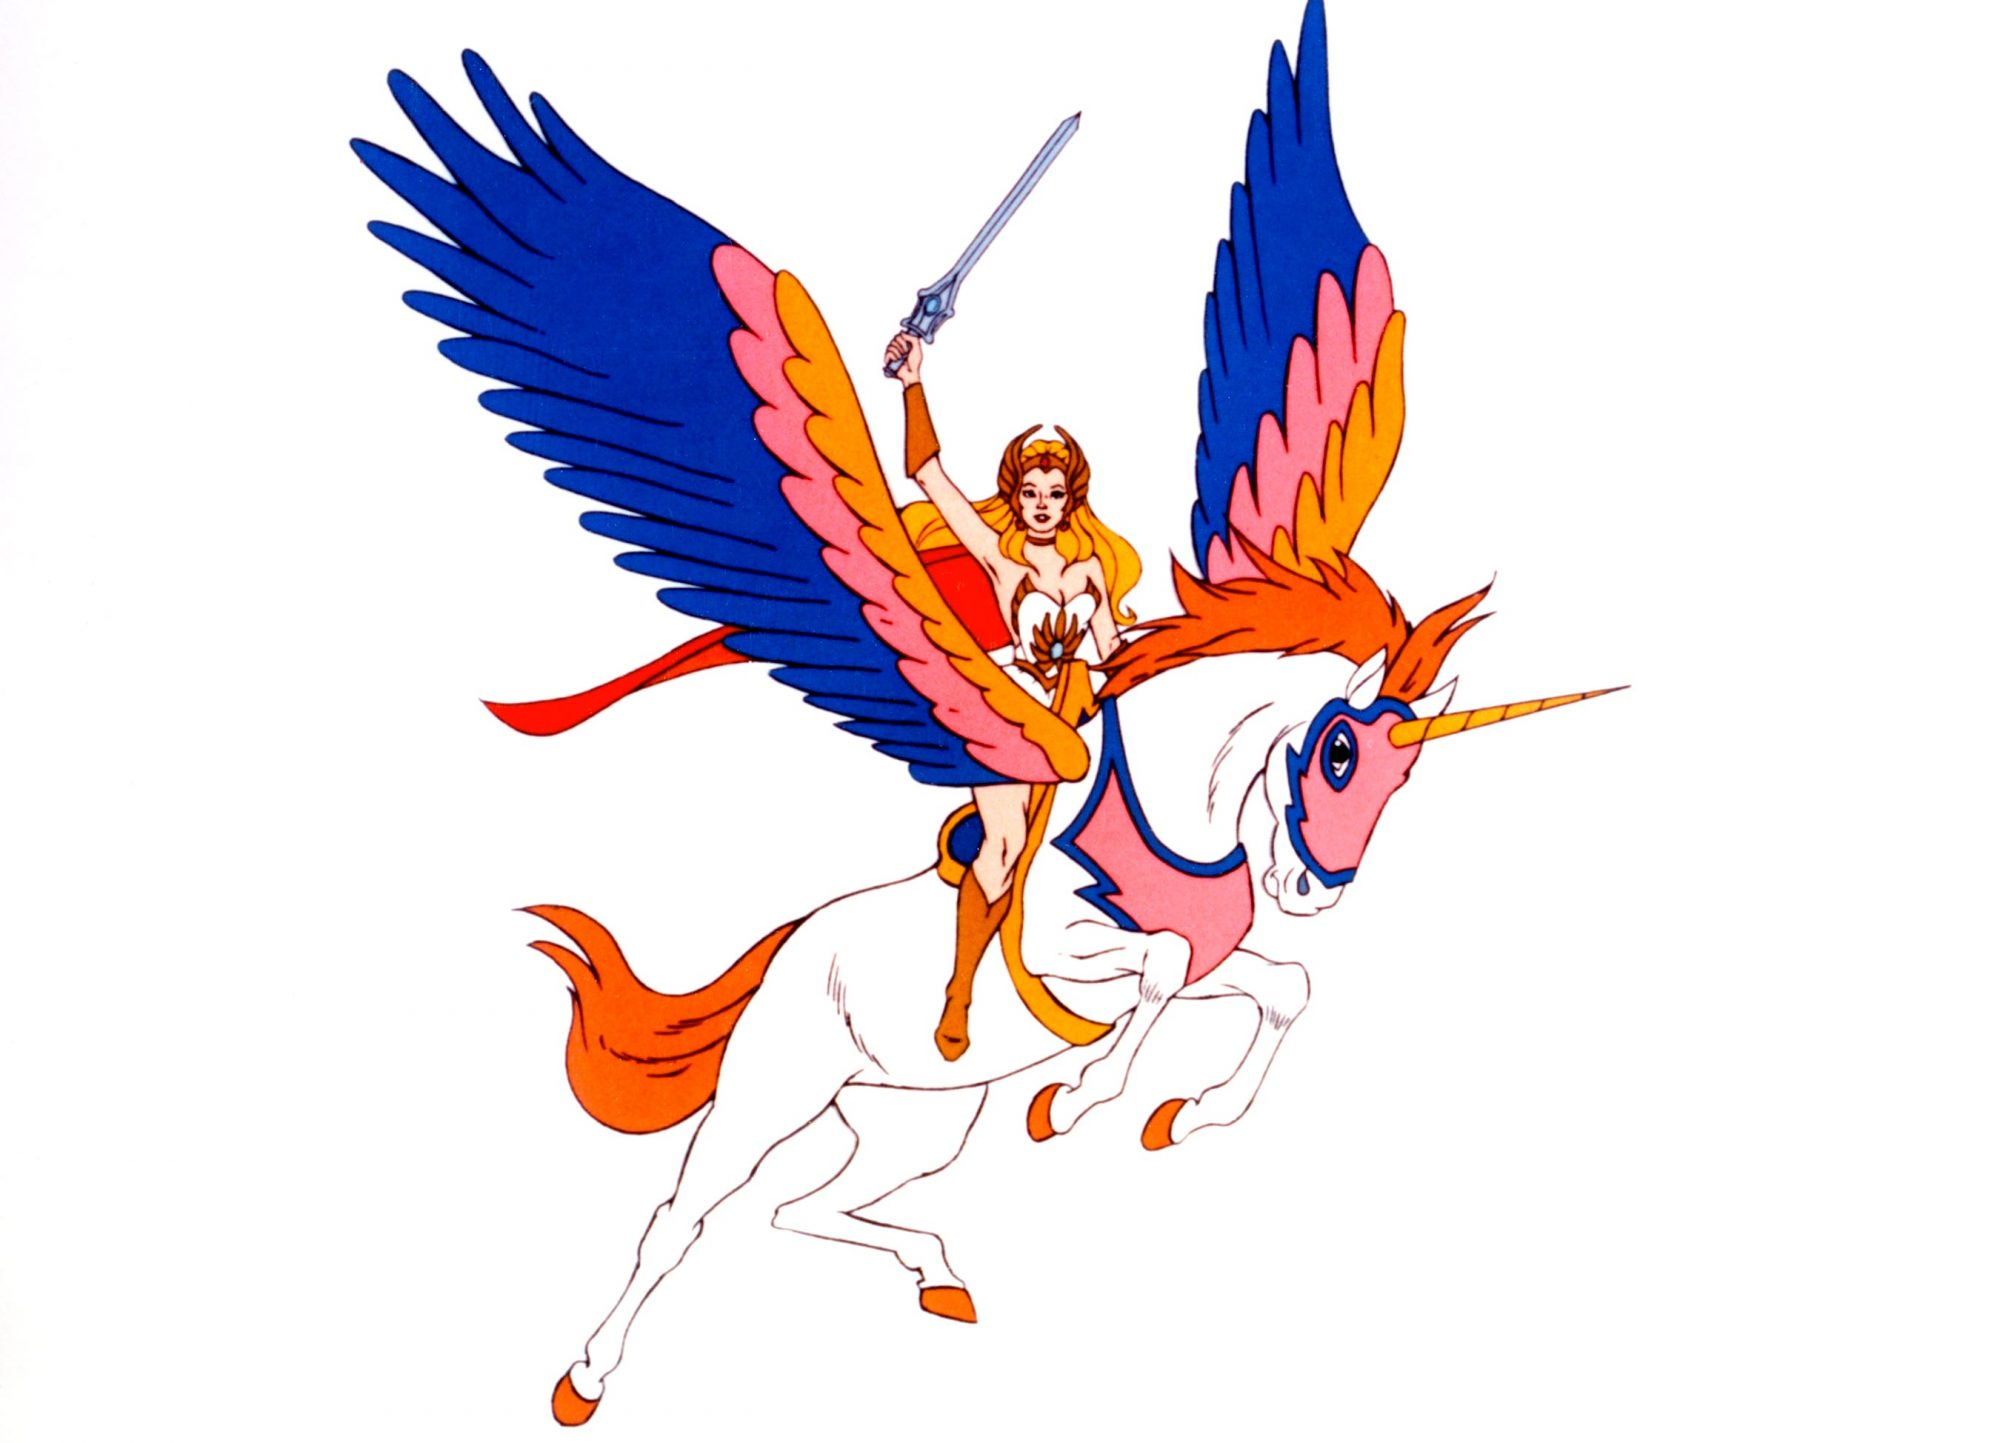 SHE-RA: PRINCESS OF POWER, 1985